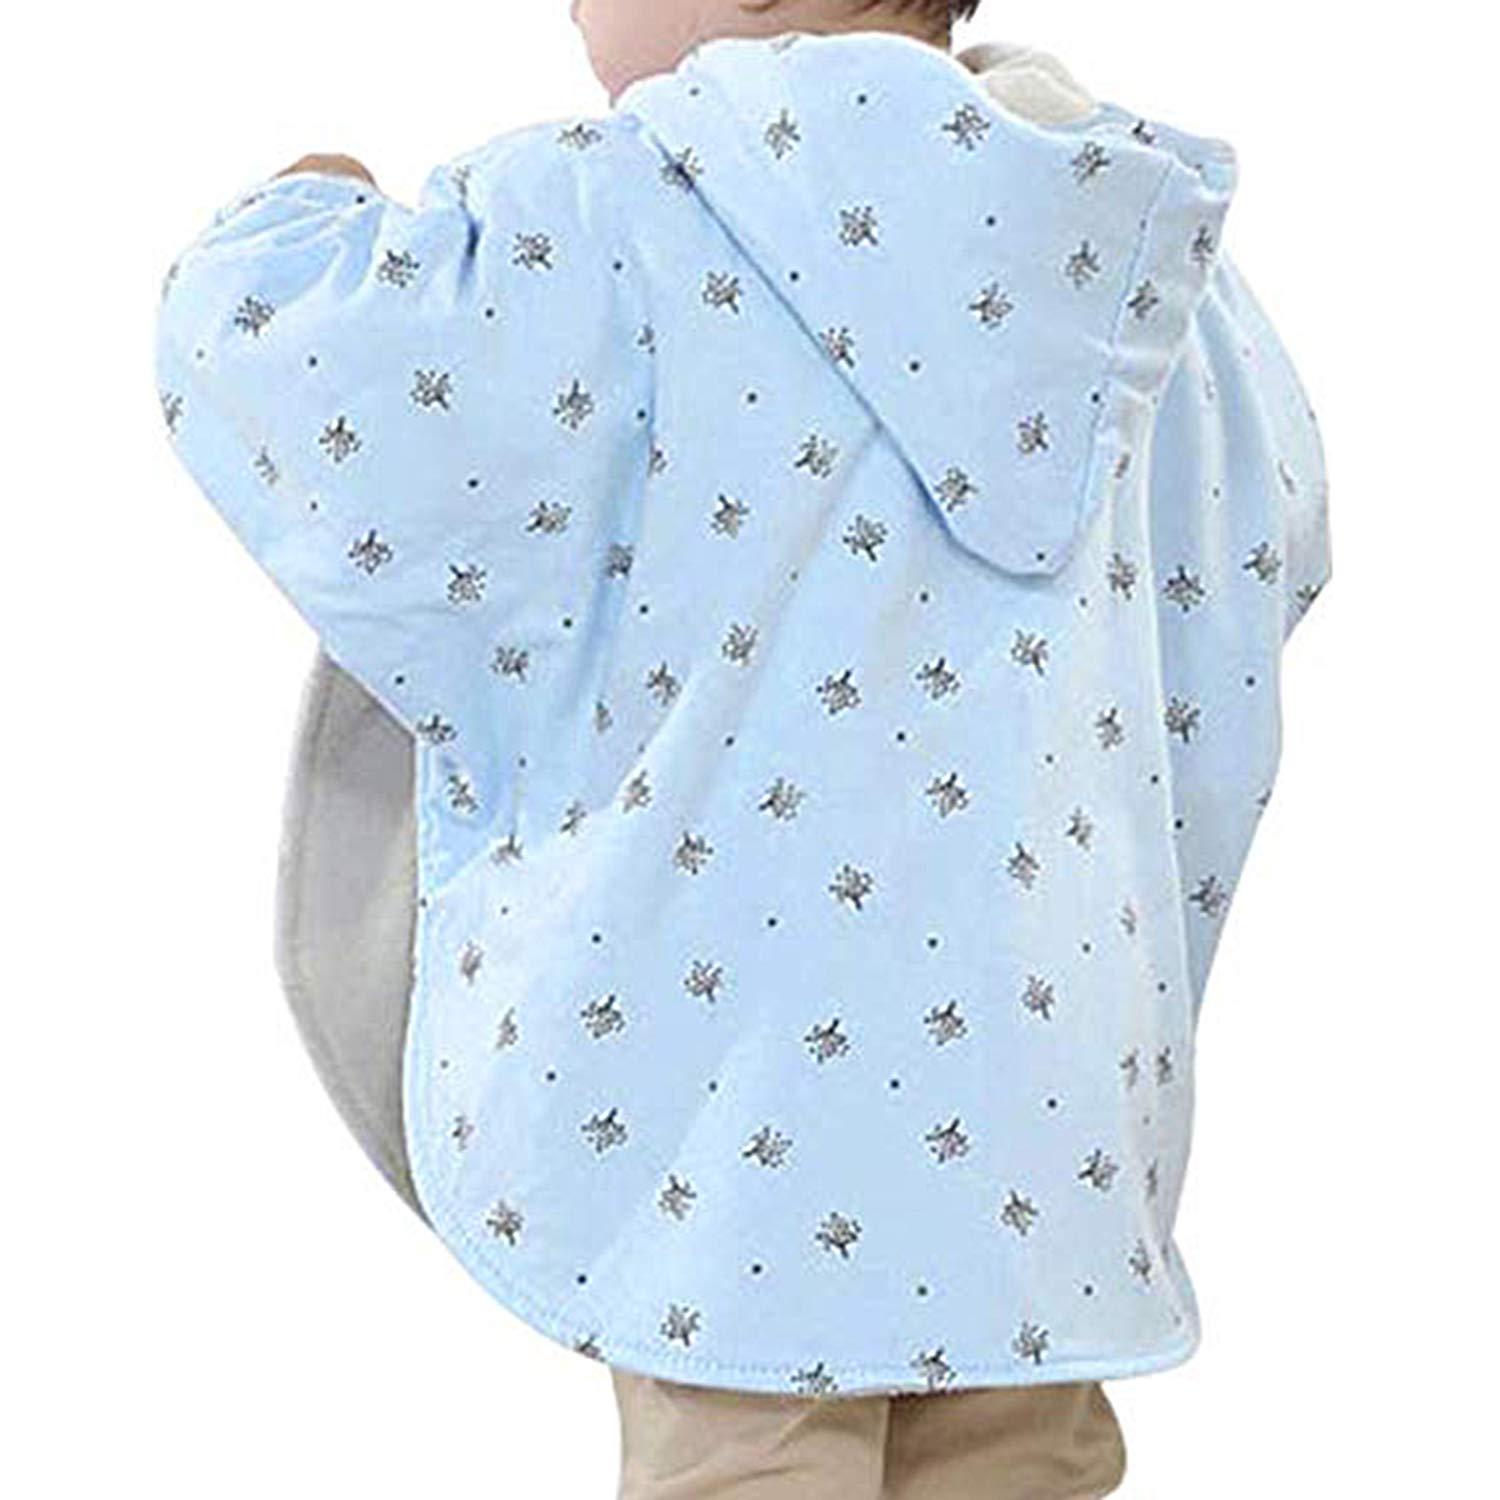 TSWRK Babys Double-Side Wear Cape Coat Snowsuit Warm Poncho for Girls Boys Toddlers